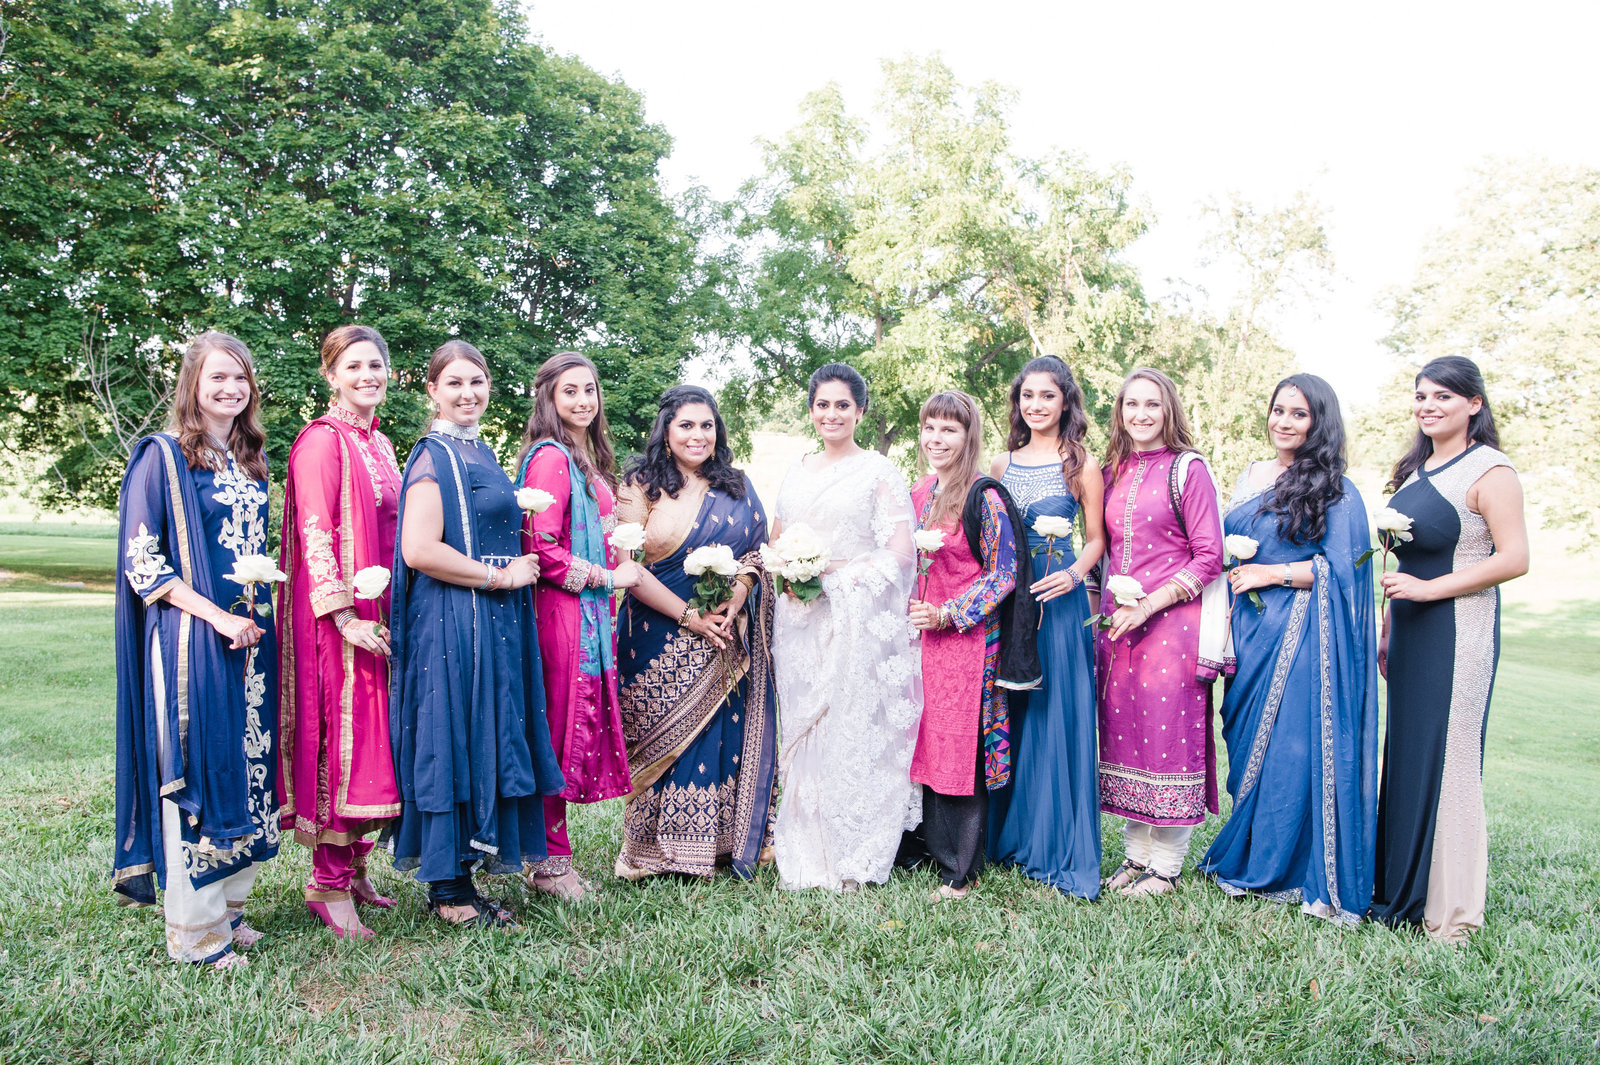 Minhas-Sohail Wedding by The Hill Studios-204